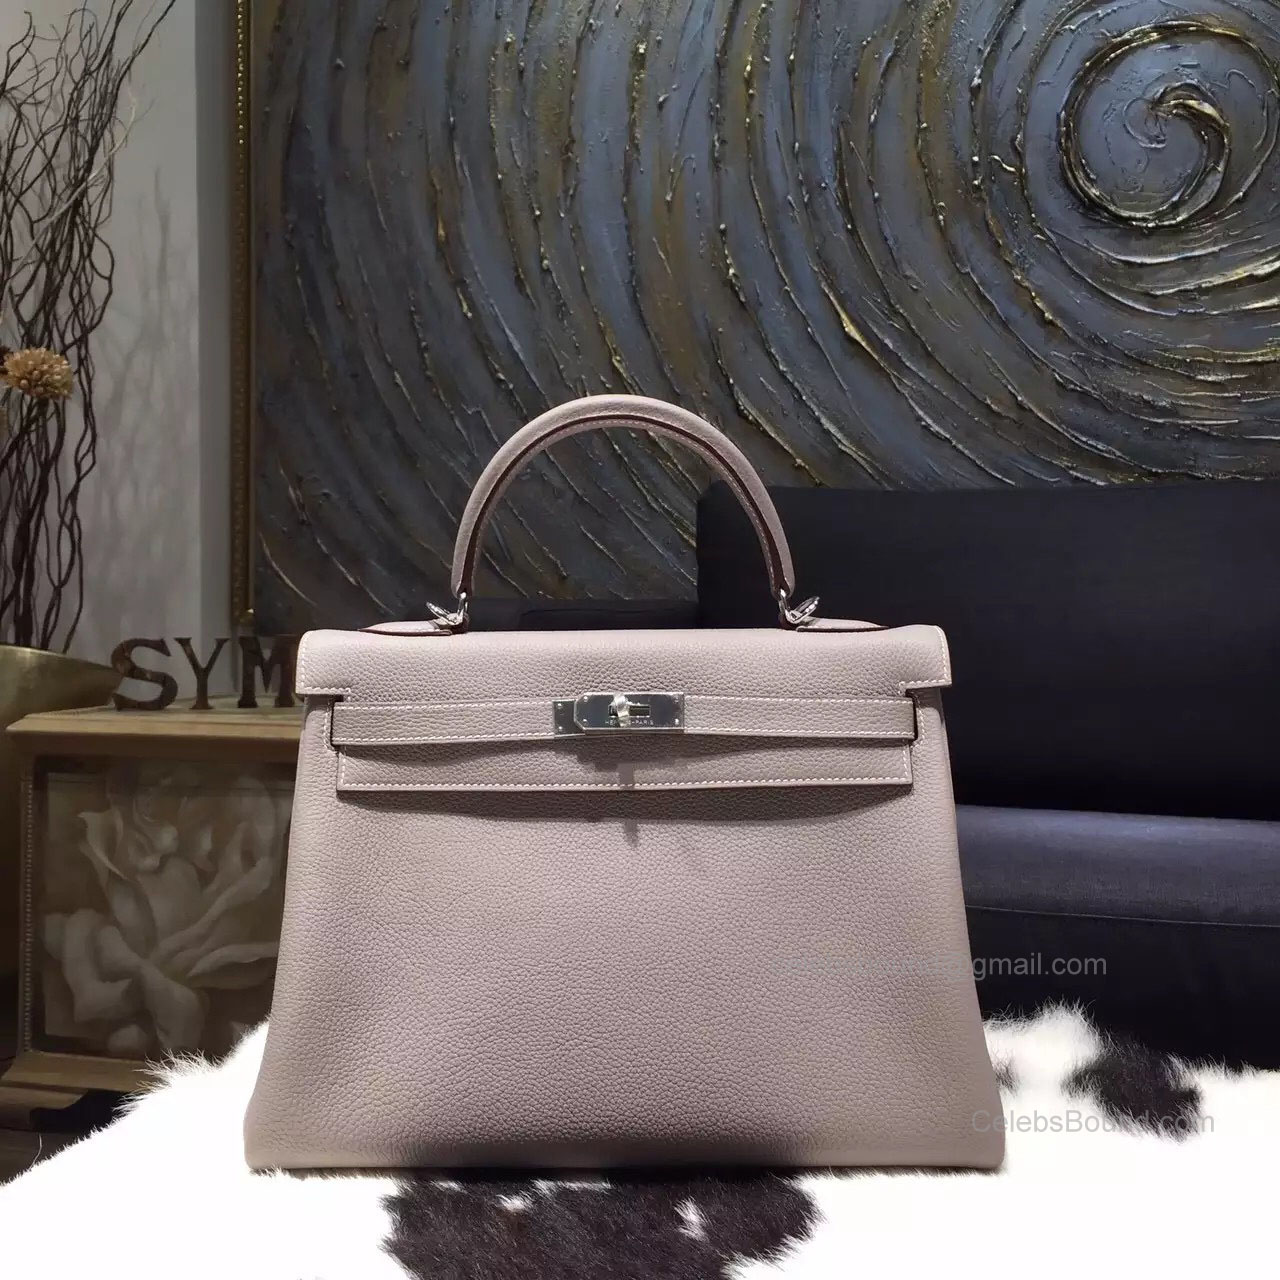 c2c7171a4c0a Hermes Kelly 32 Bag Gris Tourterelle ck81 Togo Leather Handstitched Silver  hw